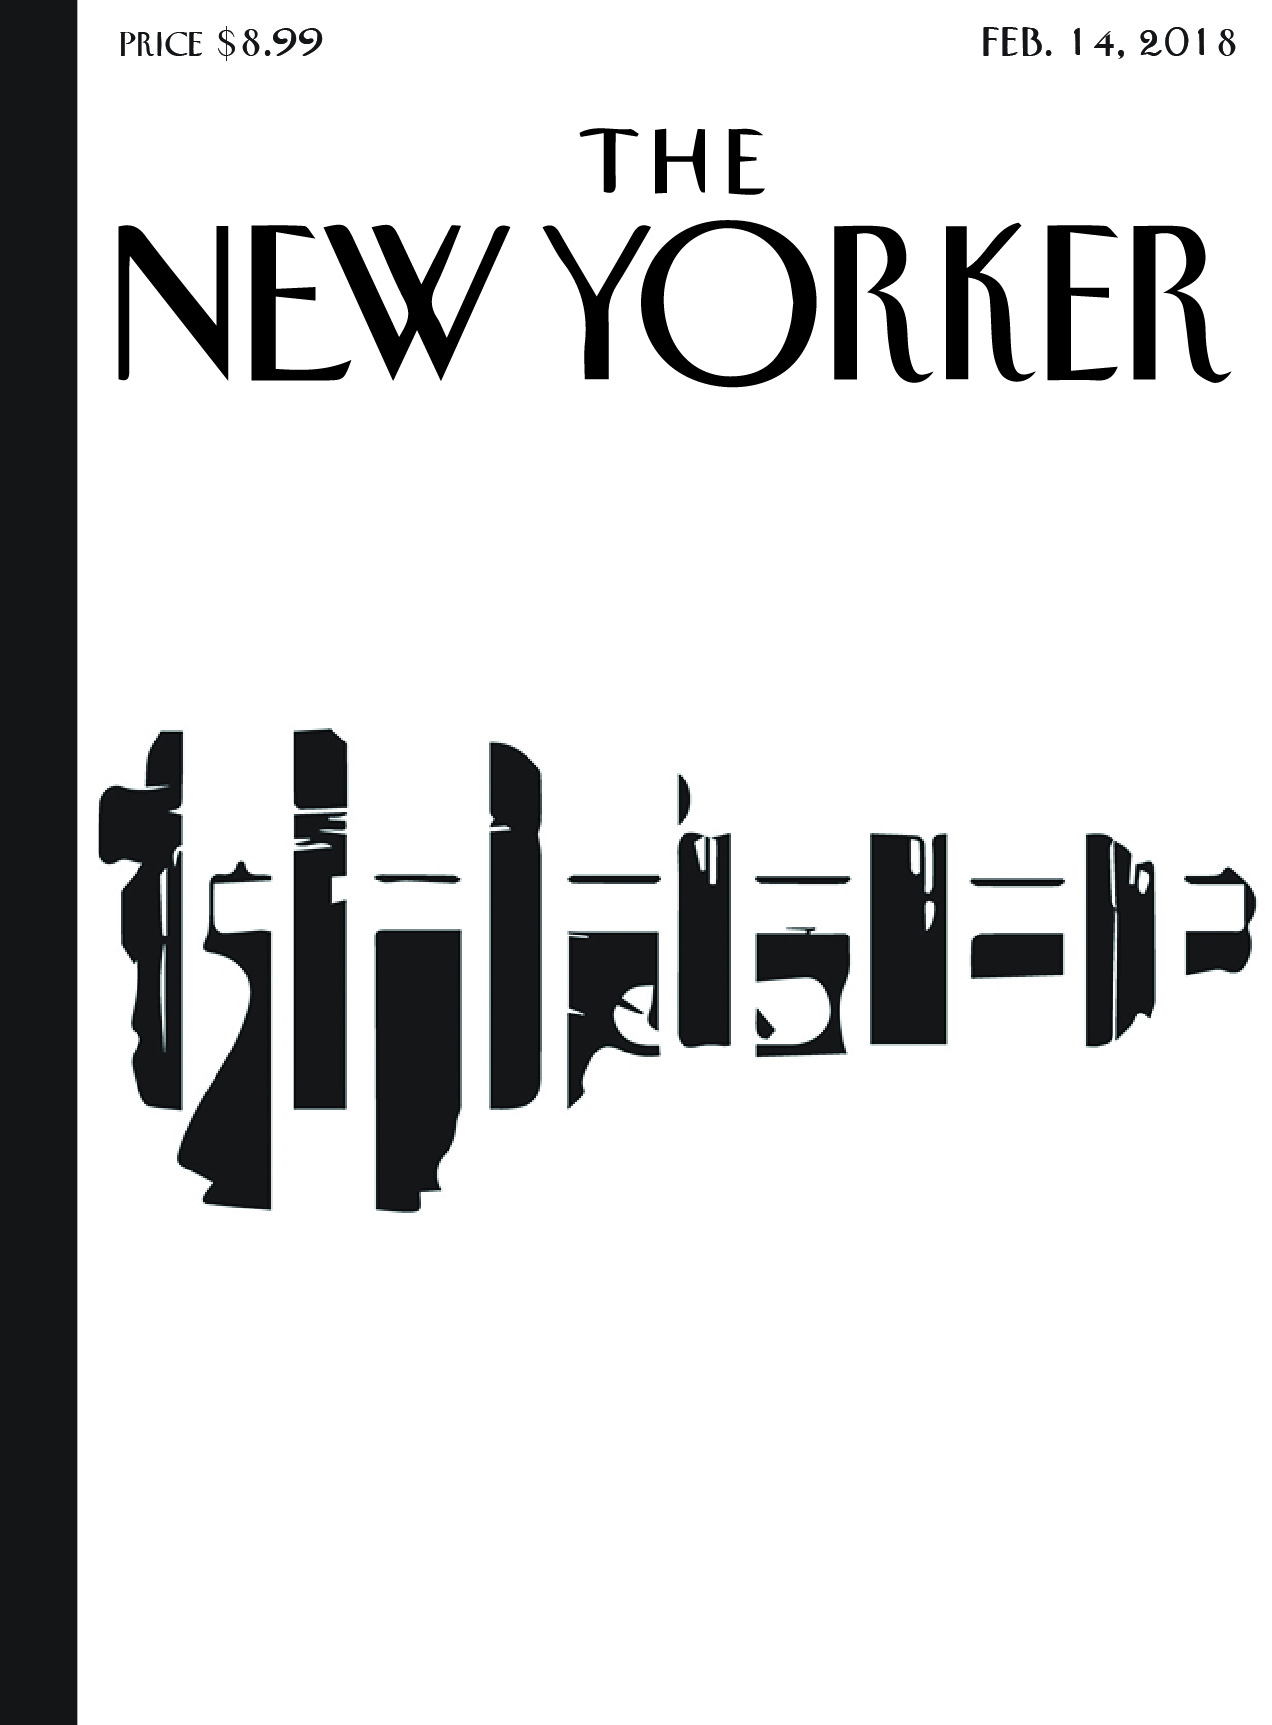 The New Yorker 1  [Recovered].jpg